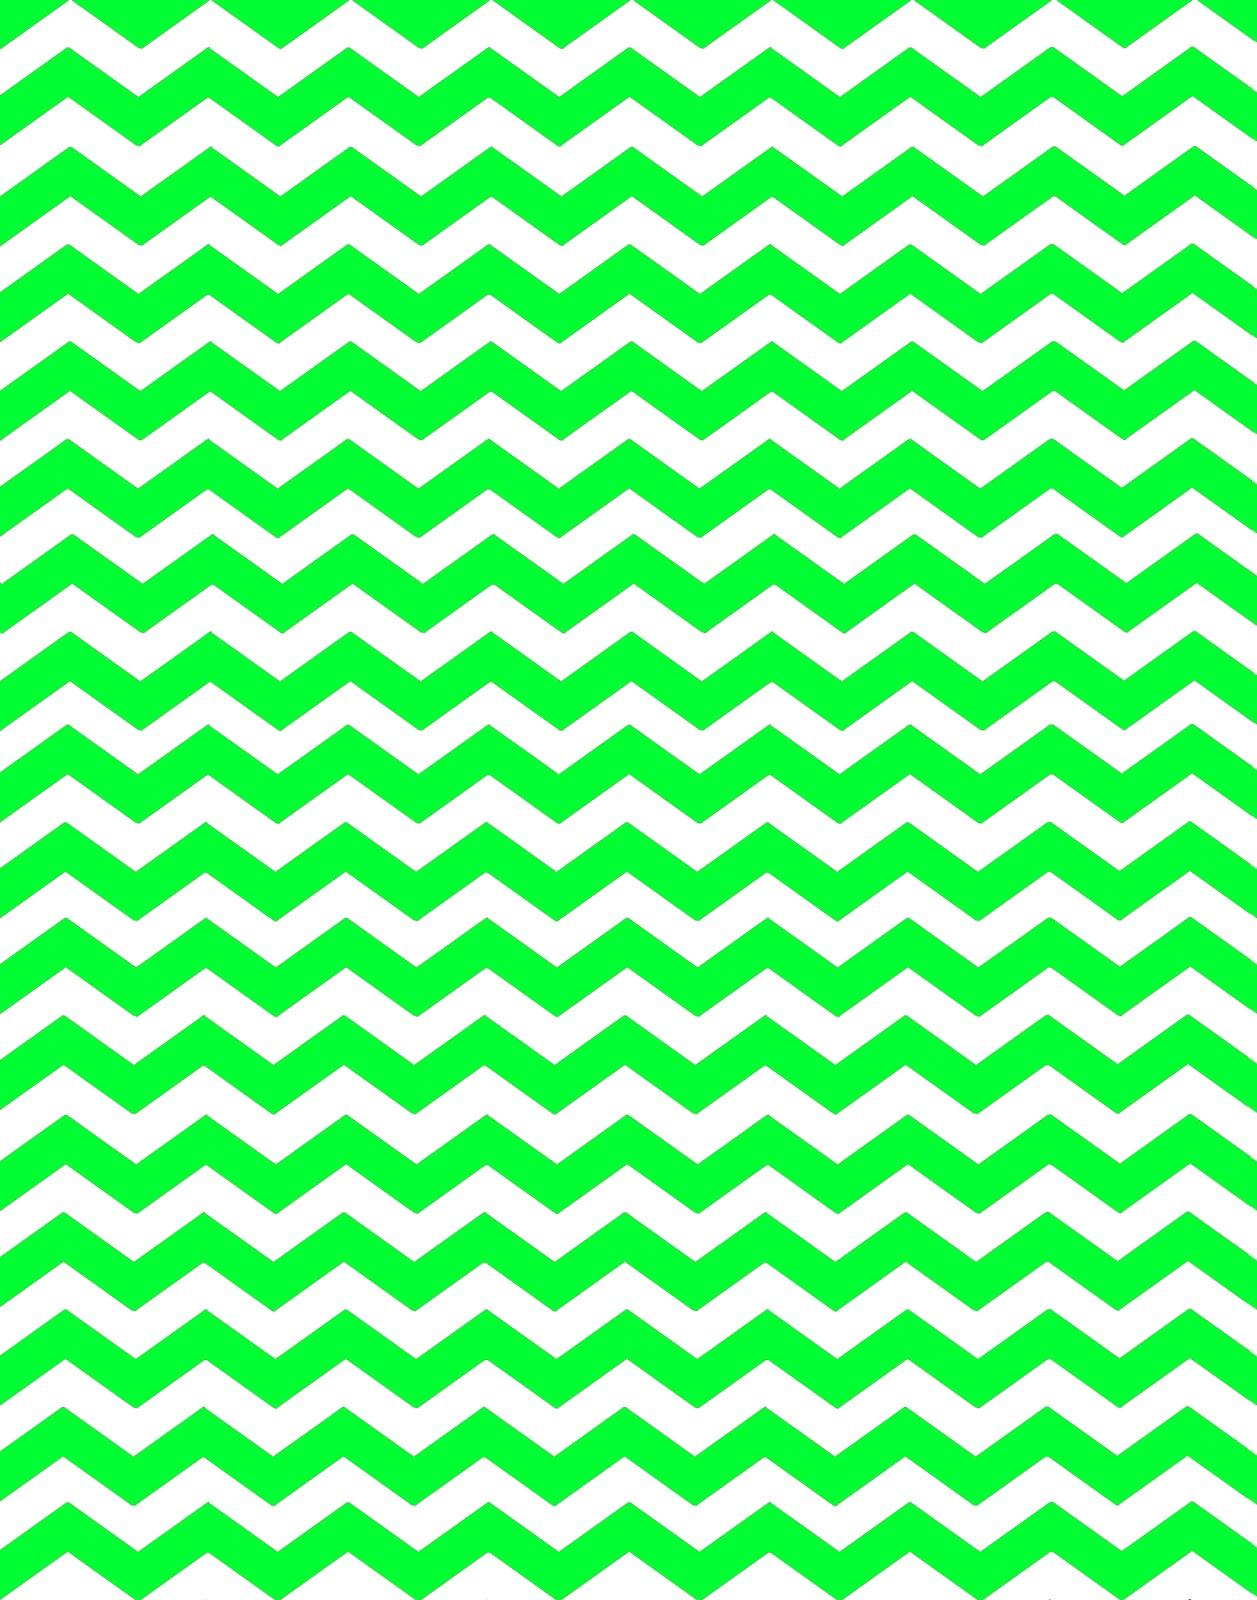 Chevron print background - 16 New Colors Chevron Background Patterns